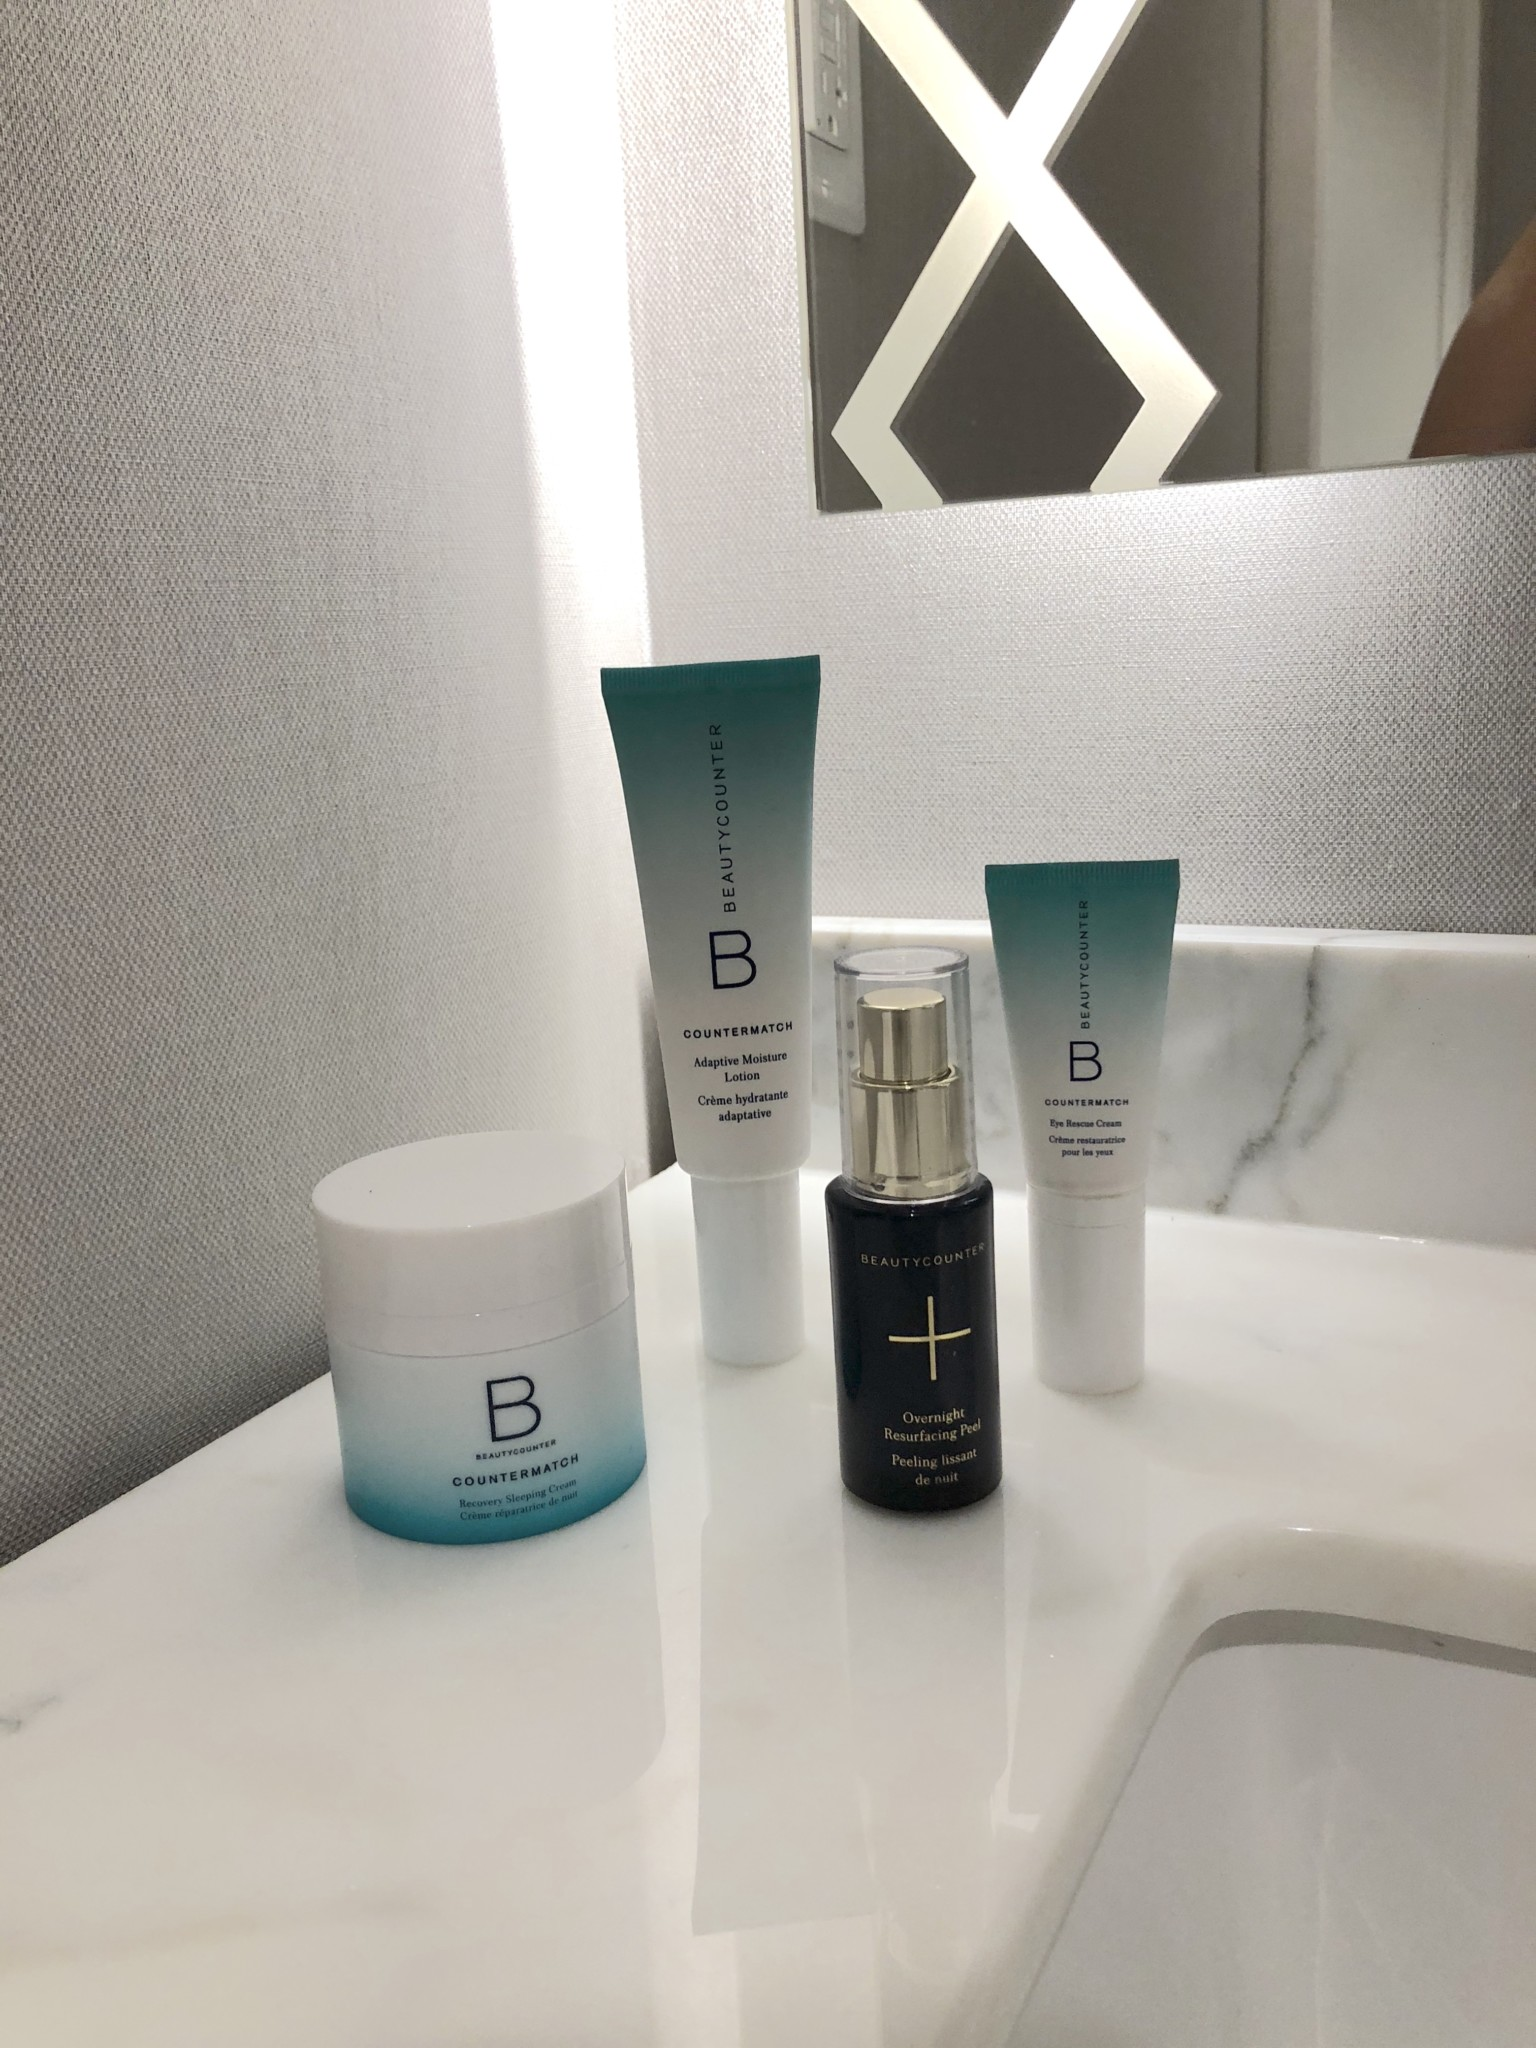 Beautycounter, a cleaner beauty brand is offering 15% off + free shipping during their 2018 Black Friday Sale